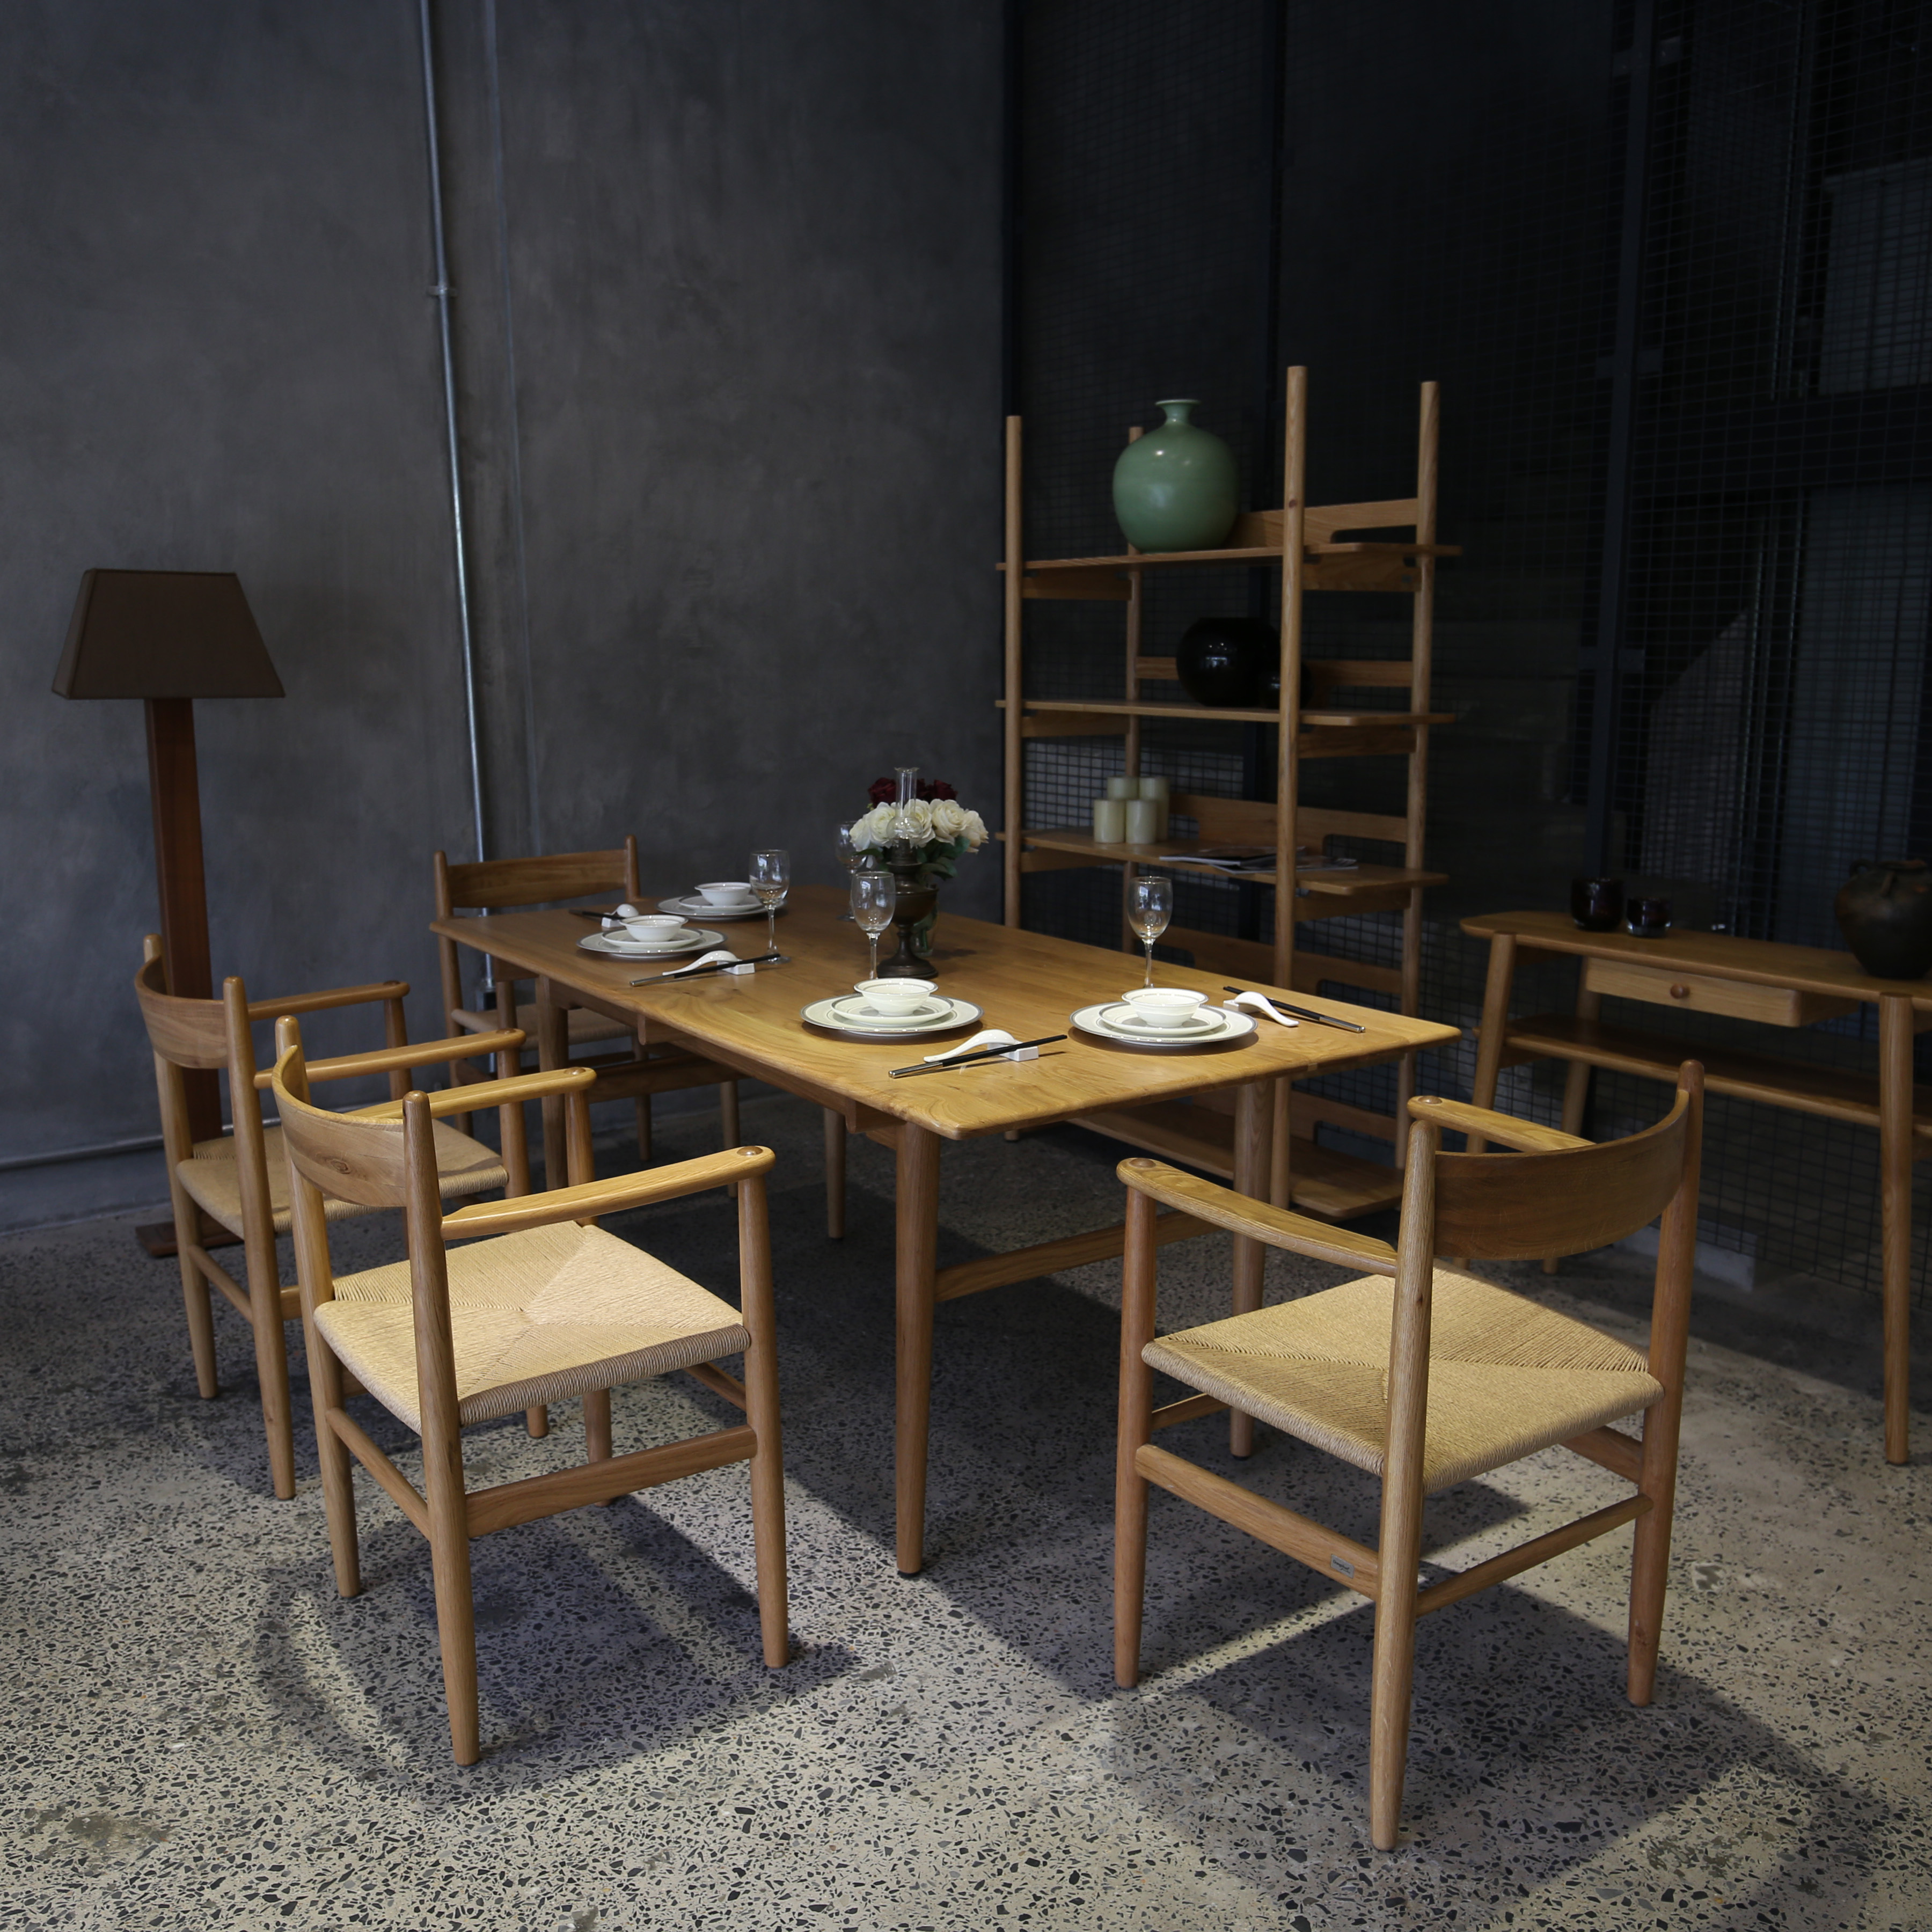 CH327 Dining table with High Quality High-end Furniture for Dining Room (Ho Chi Minh Port)